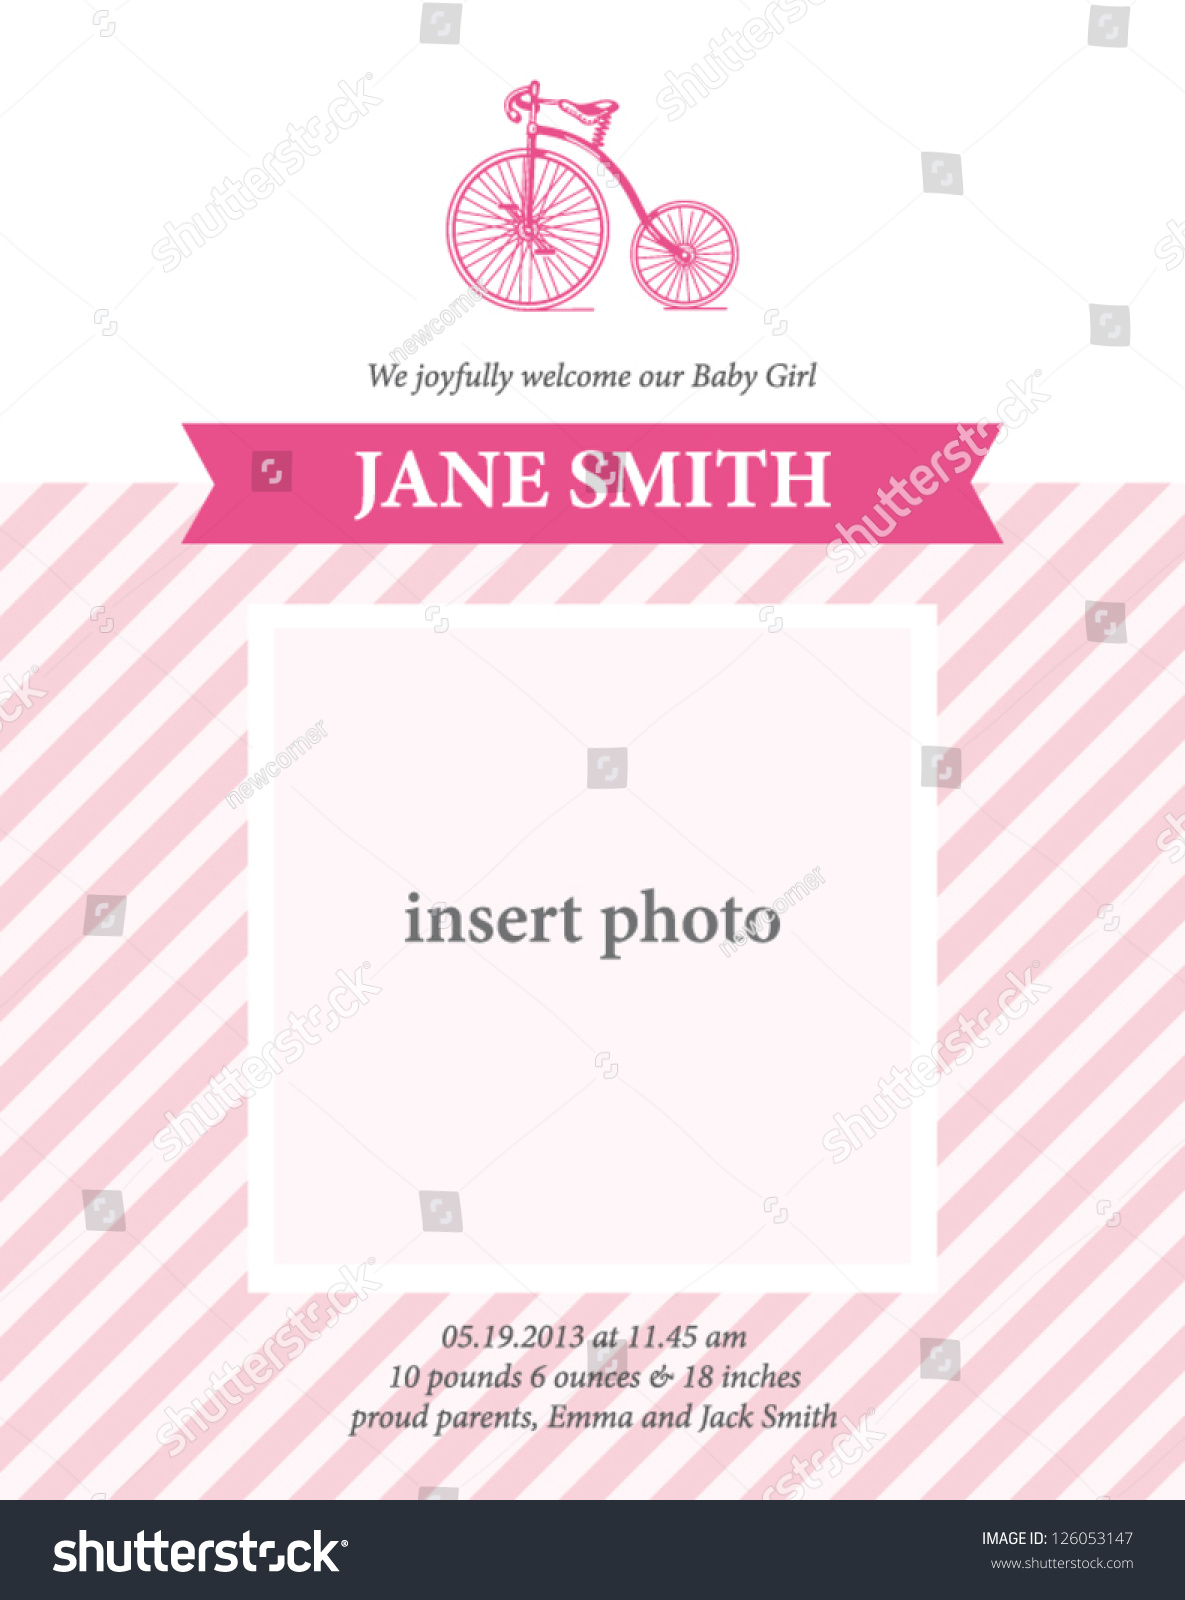 Baby Girl Birth Announcement Card Template Vector 126053147 – Birth Announcement Card Templates